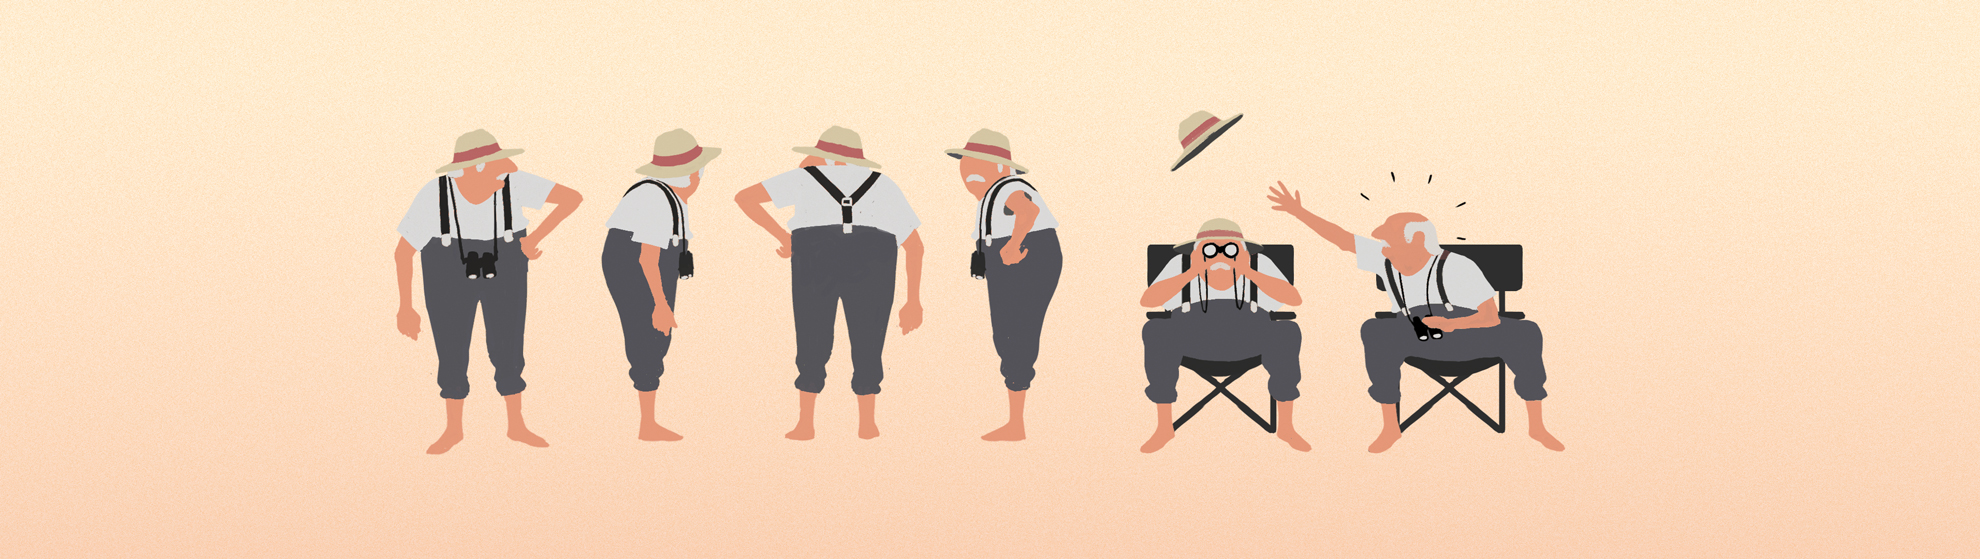 summer story parallel studio animation illustration beach motion design game raquette